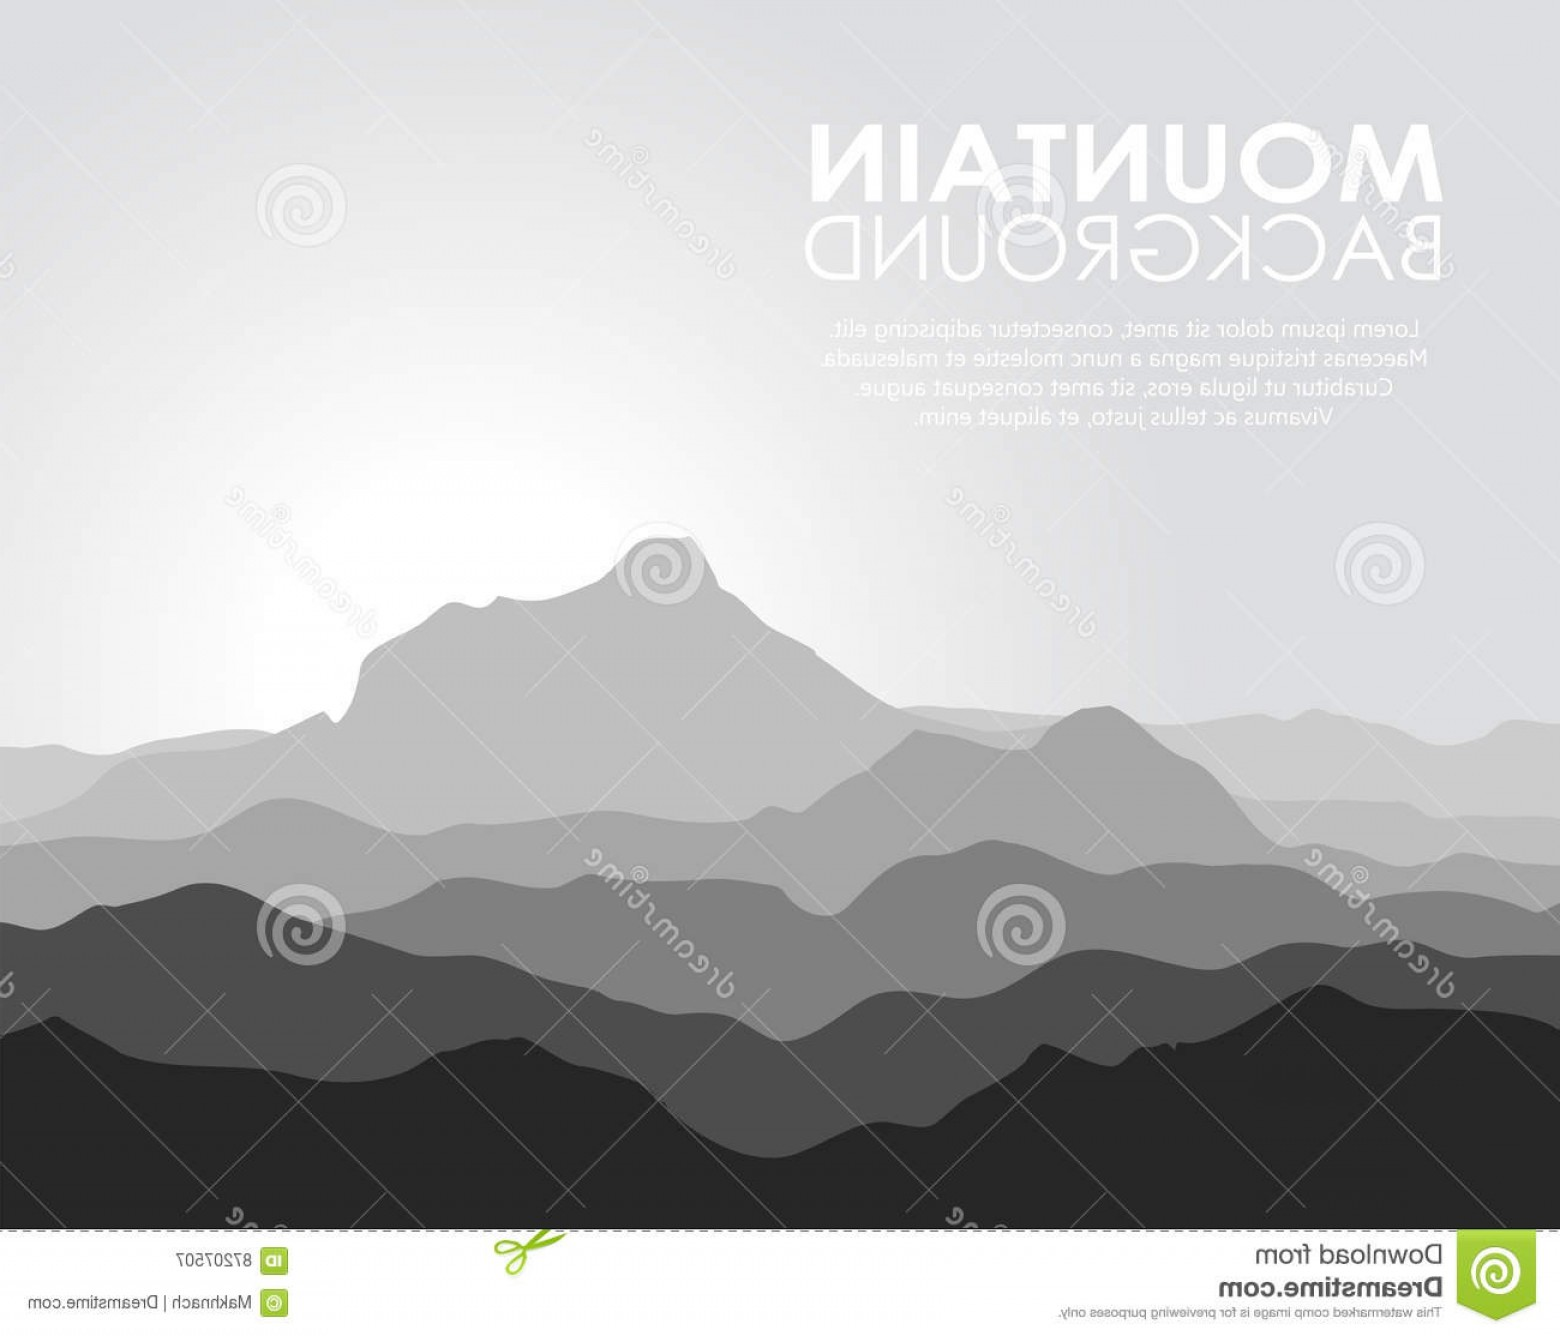 Mountain Range Silhouette Vector Free: Chic Stock Illustration Huge Mountain Range Silhouette Black White Vector Illustration Copy Space Image